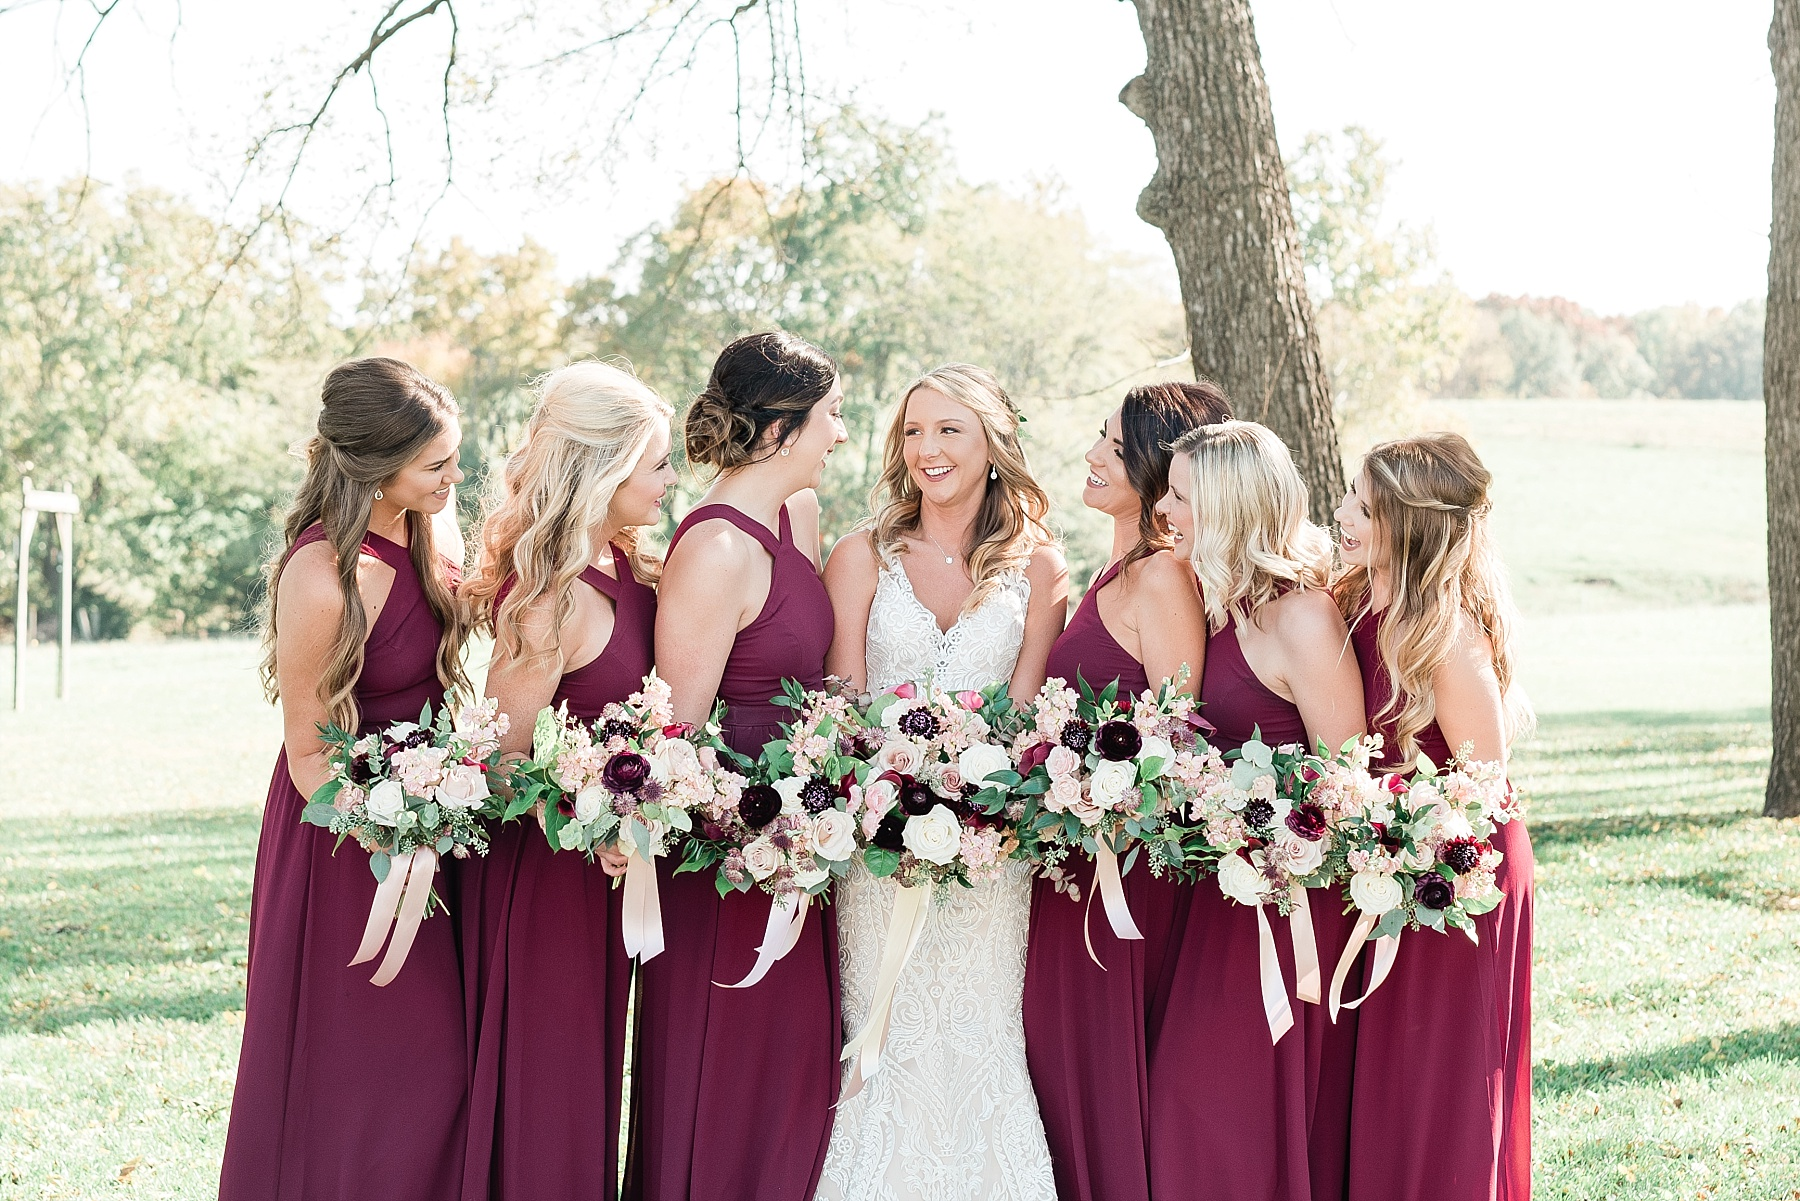 Golden Autumn Outdoor Wedding with Ivory, Bergundy, and Blush Color Palette at Blue Bell Farms  by Kelsi Kliethermes Photography_0018.jpg